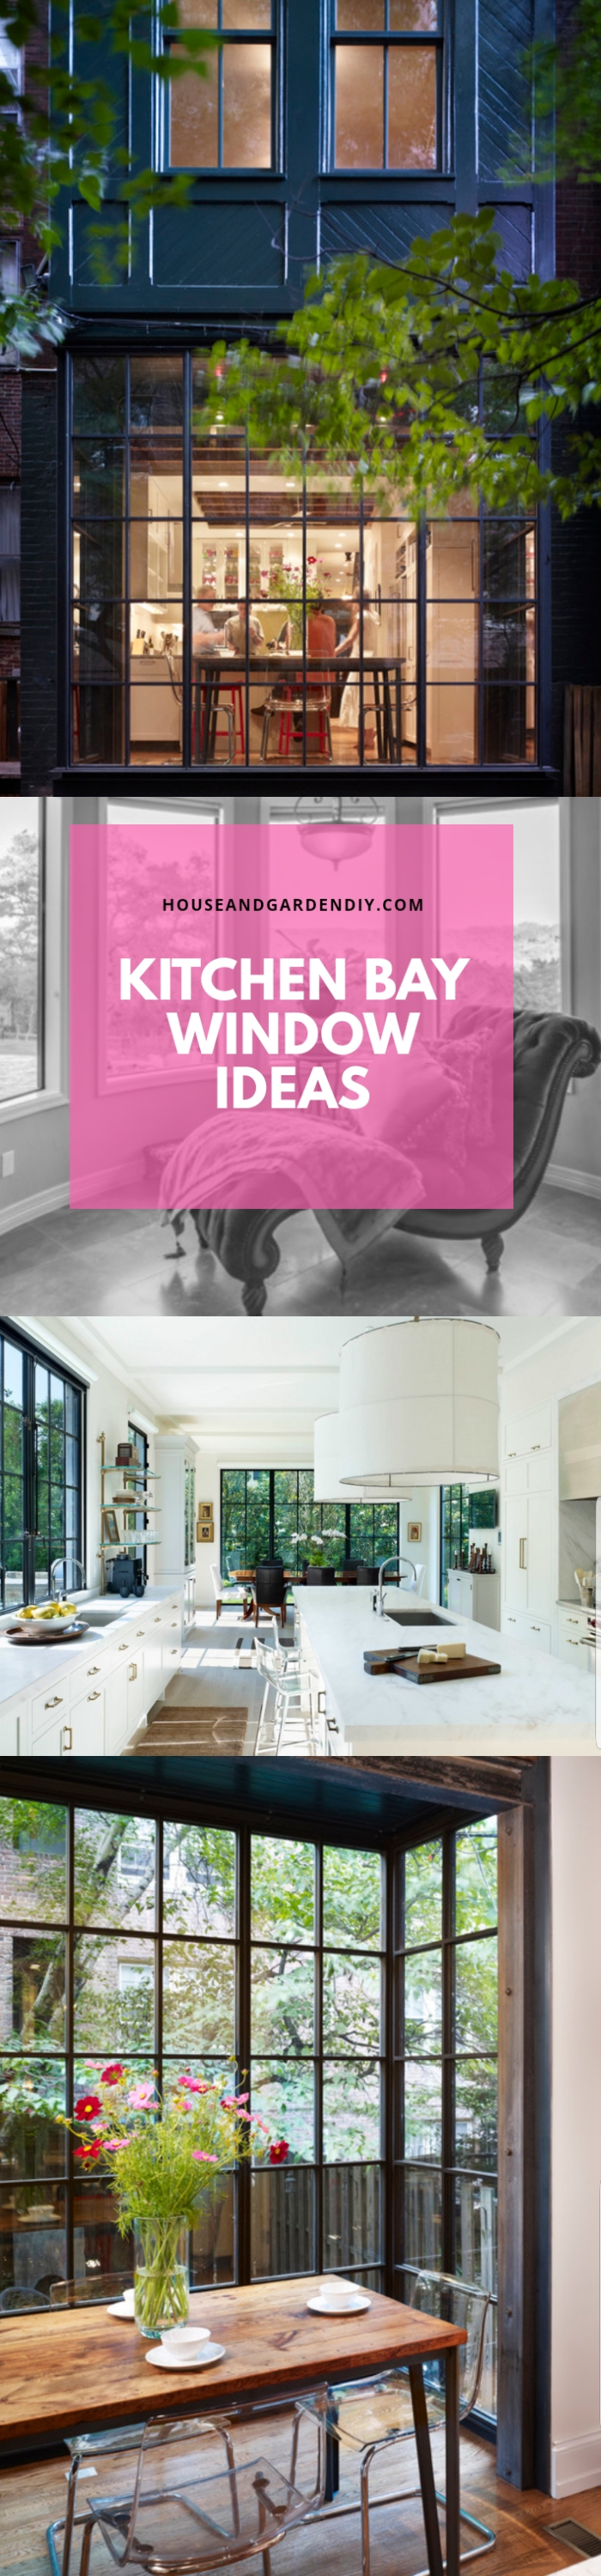 30+ Bay Window Ideas for your Bedroom, Kitchen & Livingroom! - House Ideas For Kitchen Bay Window on kitchen garden ideas, kitchen curtains ideas, kitchen ceramic floor ideas, kitchen blinds ideas, kitchen hardwood floor ideas, kitchen lighting ideas, kitchen tile ideas, bow window ideas, kitchen window valance ideas, kitchen valances for bay windows, 2 car garage ideas, kitchen sink ideas, kitchen window drapes ideas, window coverings ideas, breakfast nook ideas, kitchen window treatments, kitchen chair rail ideas, kitchen window shutter ideas, bathroom ideas,